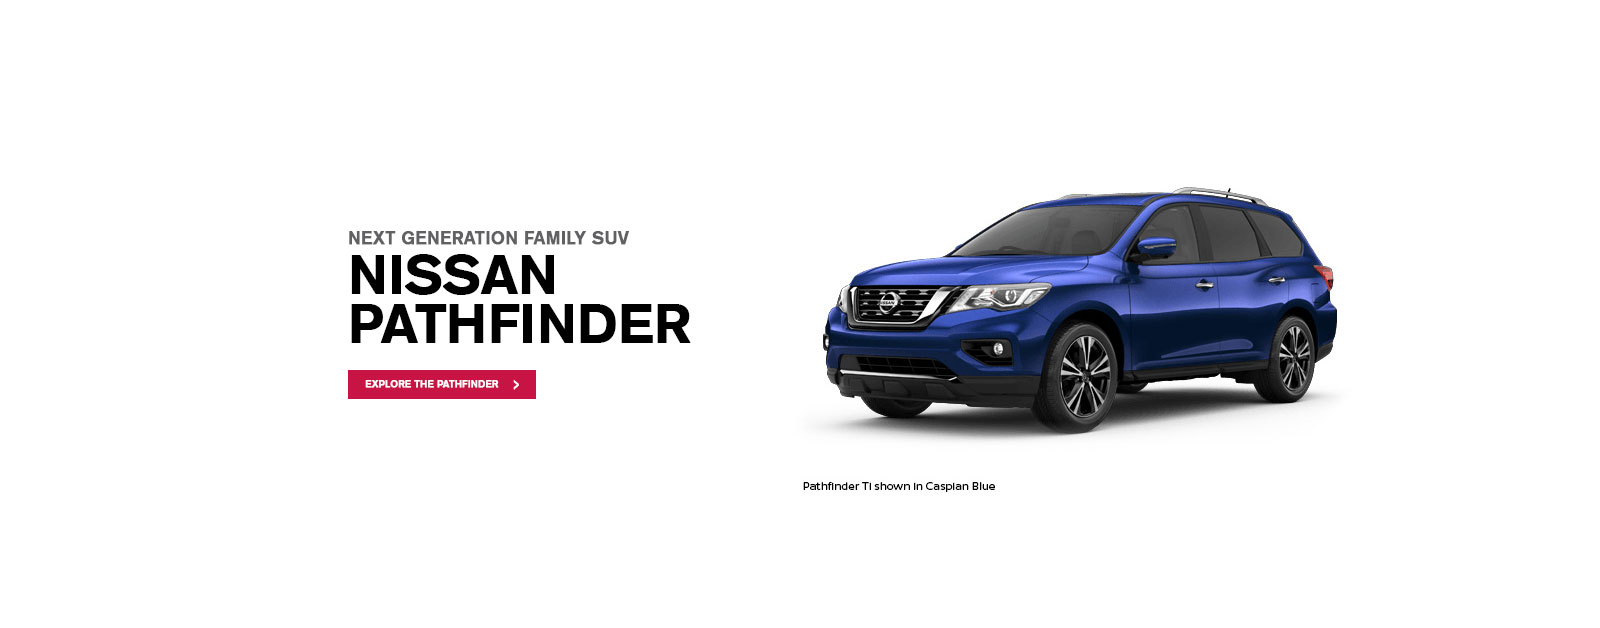 Nissan Pathfinder, the next generation family SUV, available at Metro Nissan Brisbane.